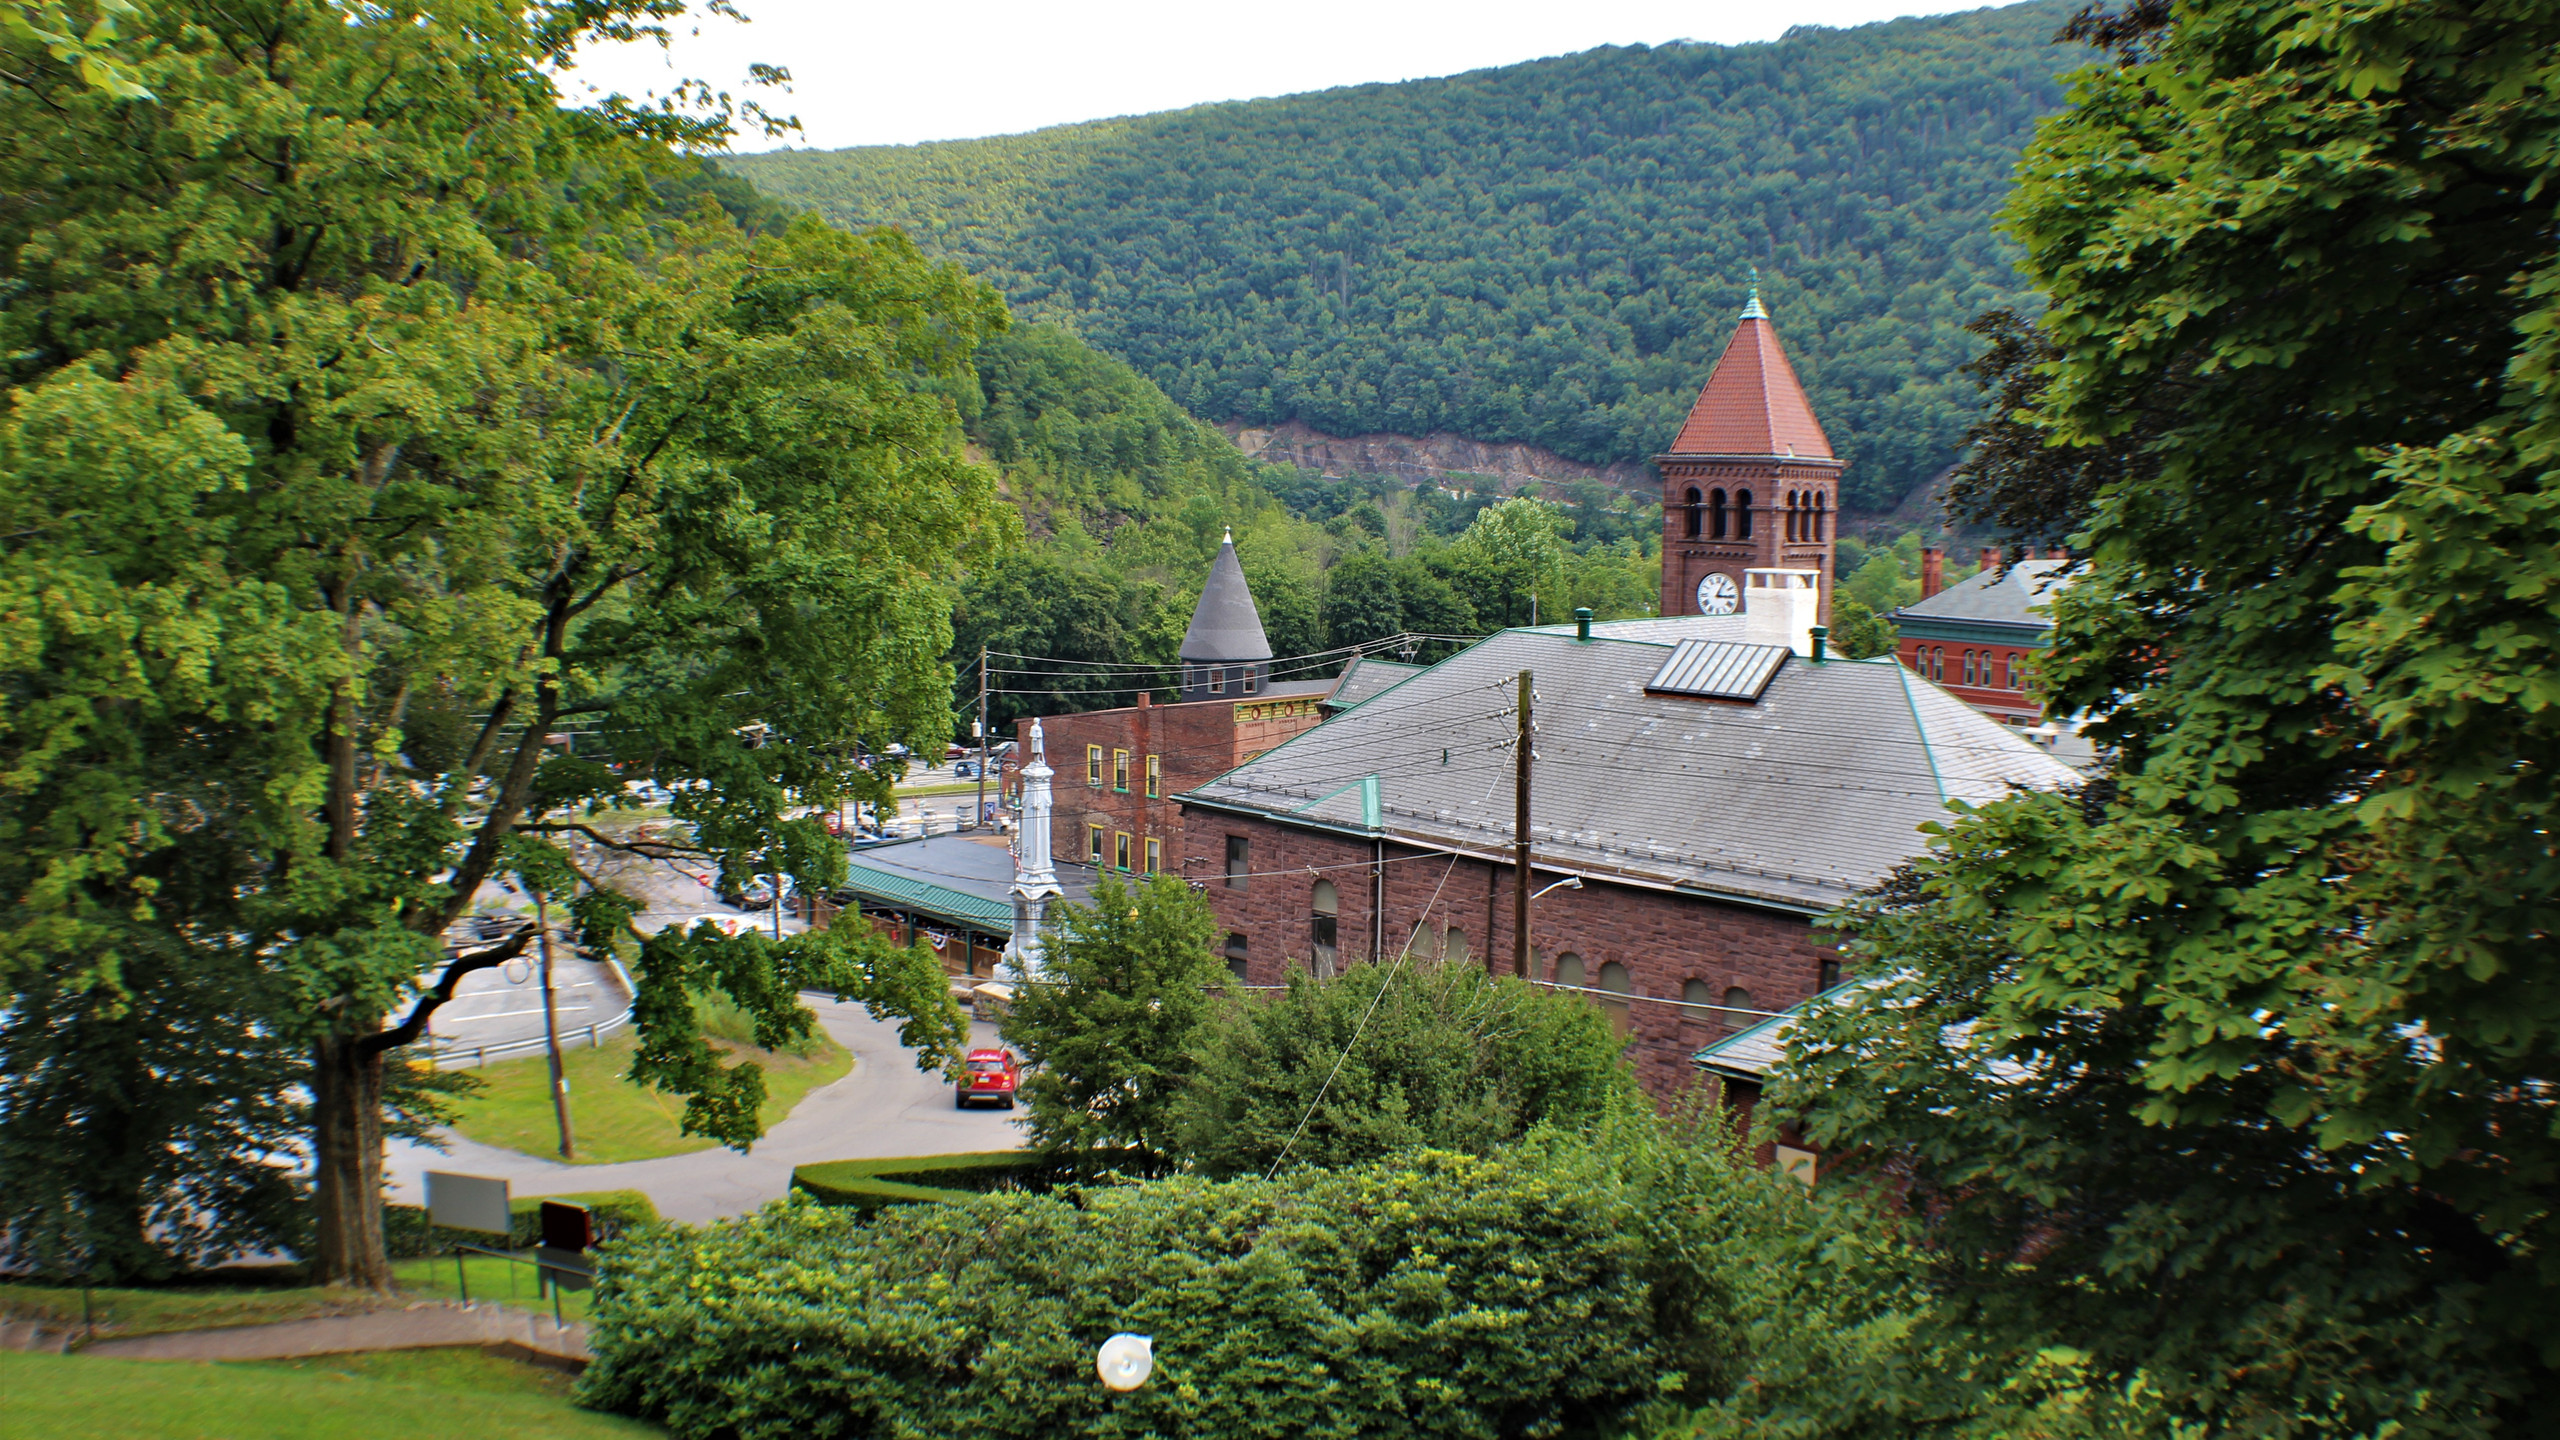 View of Jim Thorpe from the Mansion